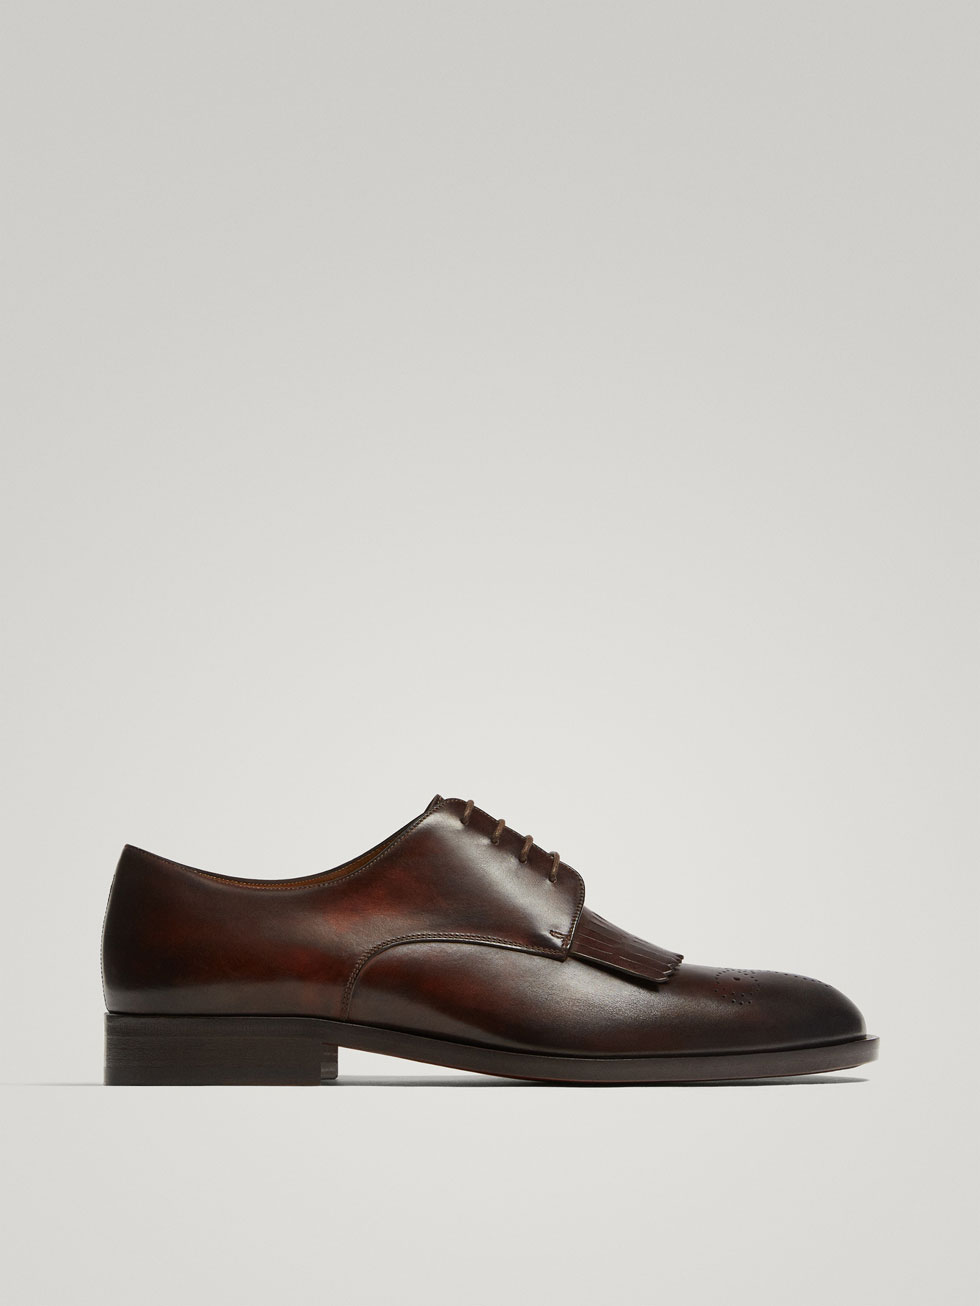 Fringed Leather Derby Shoes Made In Italy by Massimo Dutti